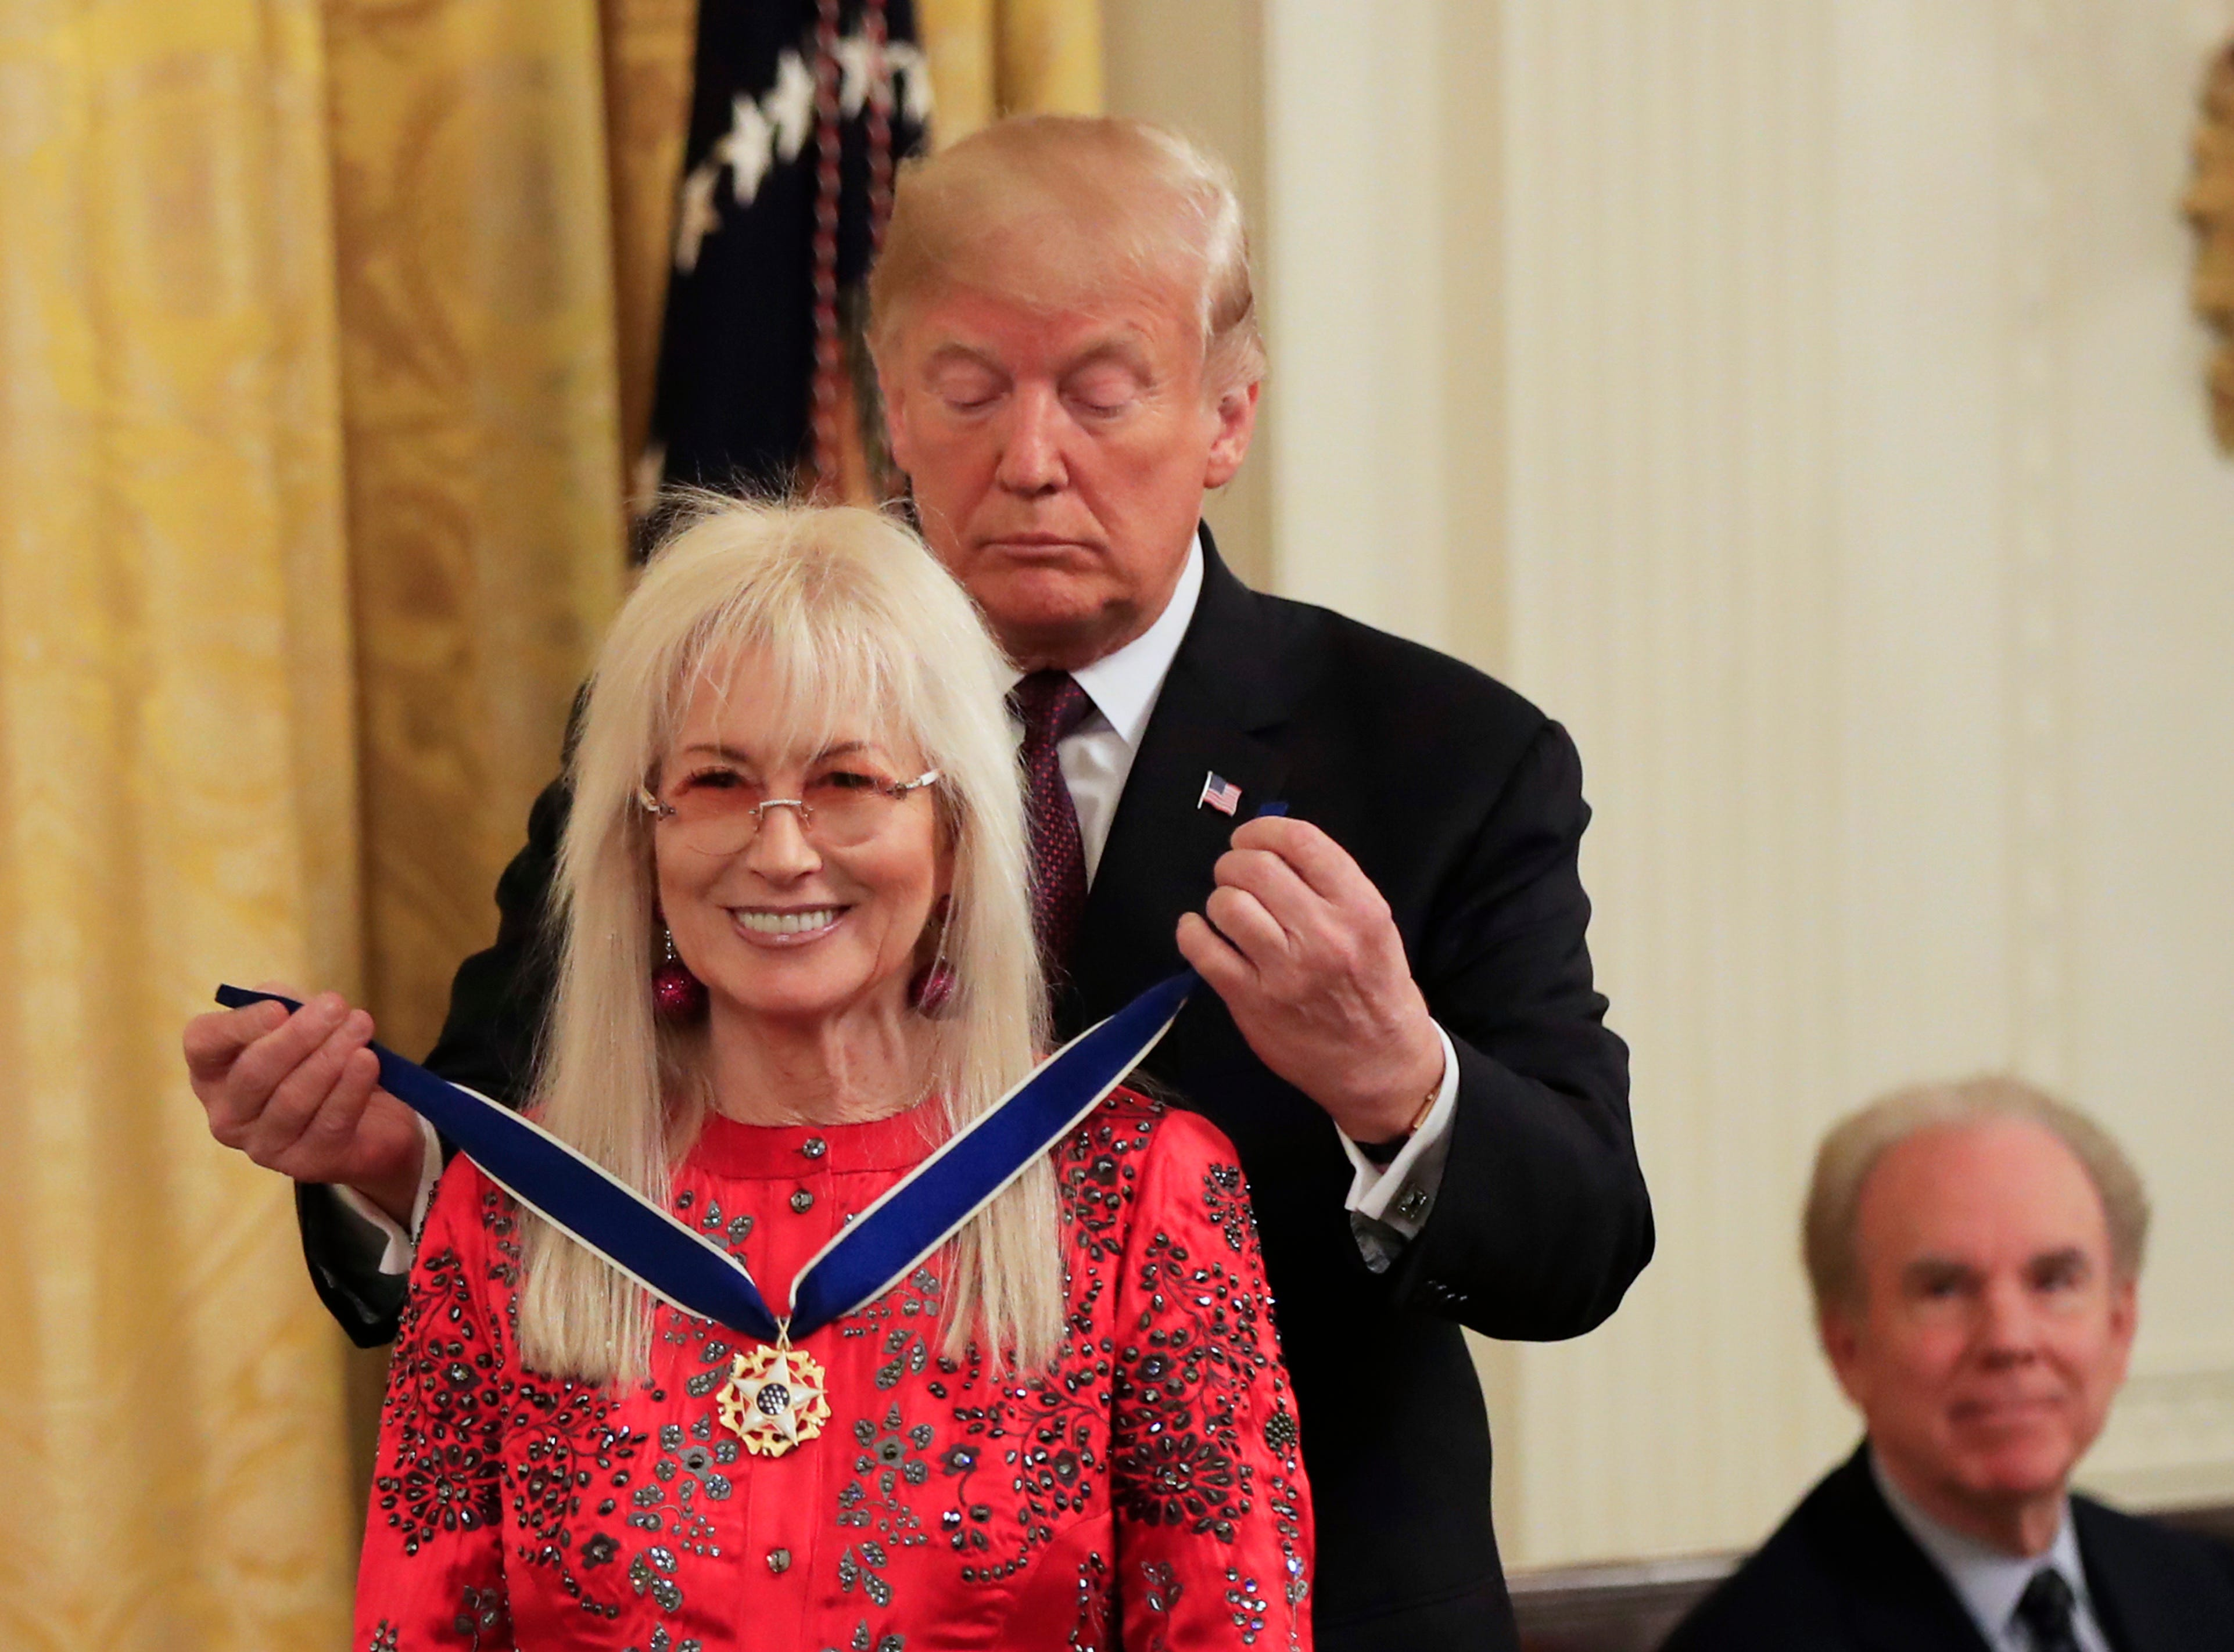 President Donald Trump presents the Presidential Medal of Freedom to Miriam Adelson during a ceremony in the East Room of the White House, in Washington, D.C., on Friday, Nov. 16, 2018.